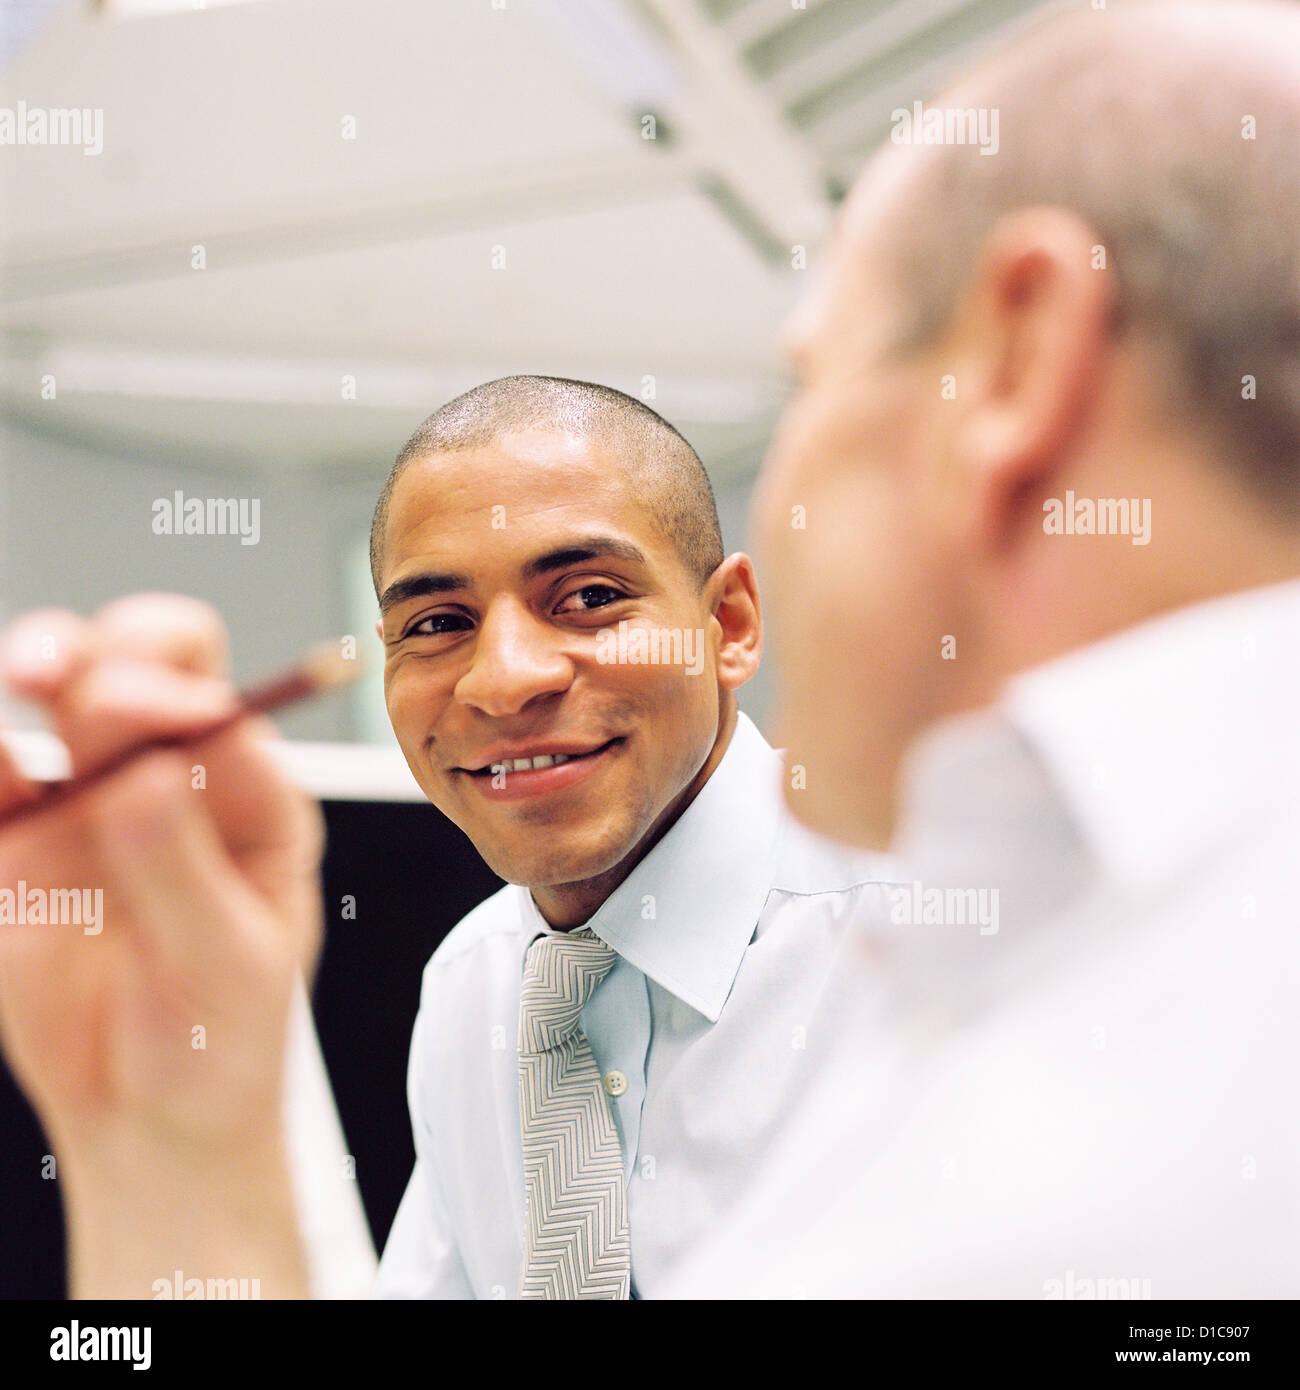 Business people data center control center man License free except ads and billboards - Stock Image